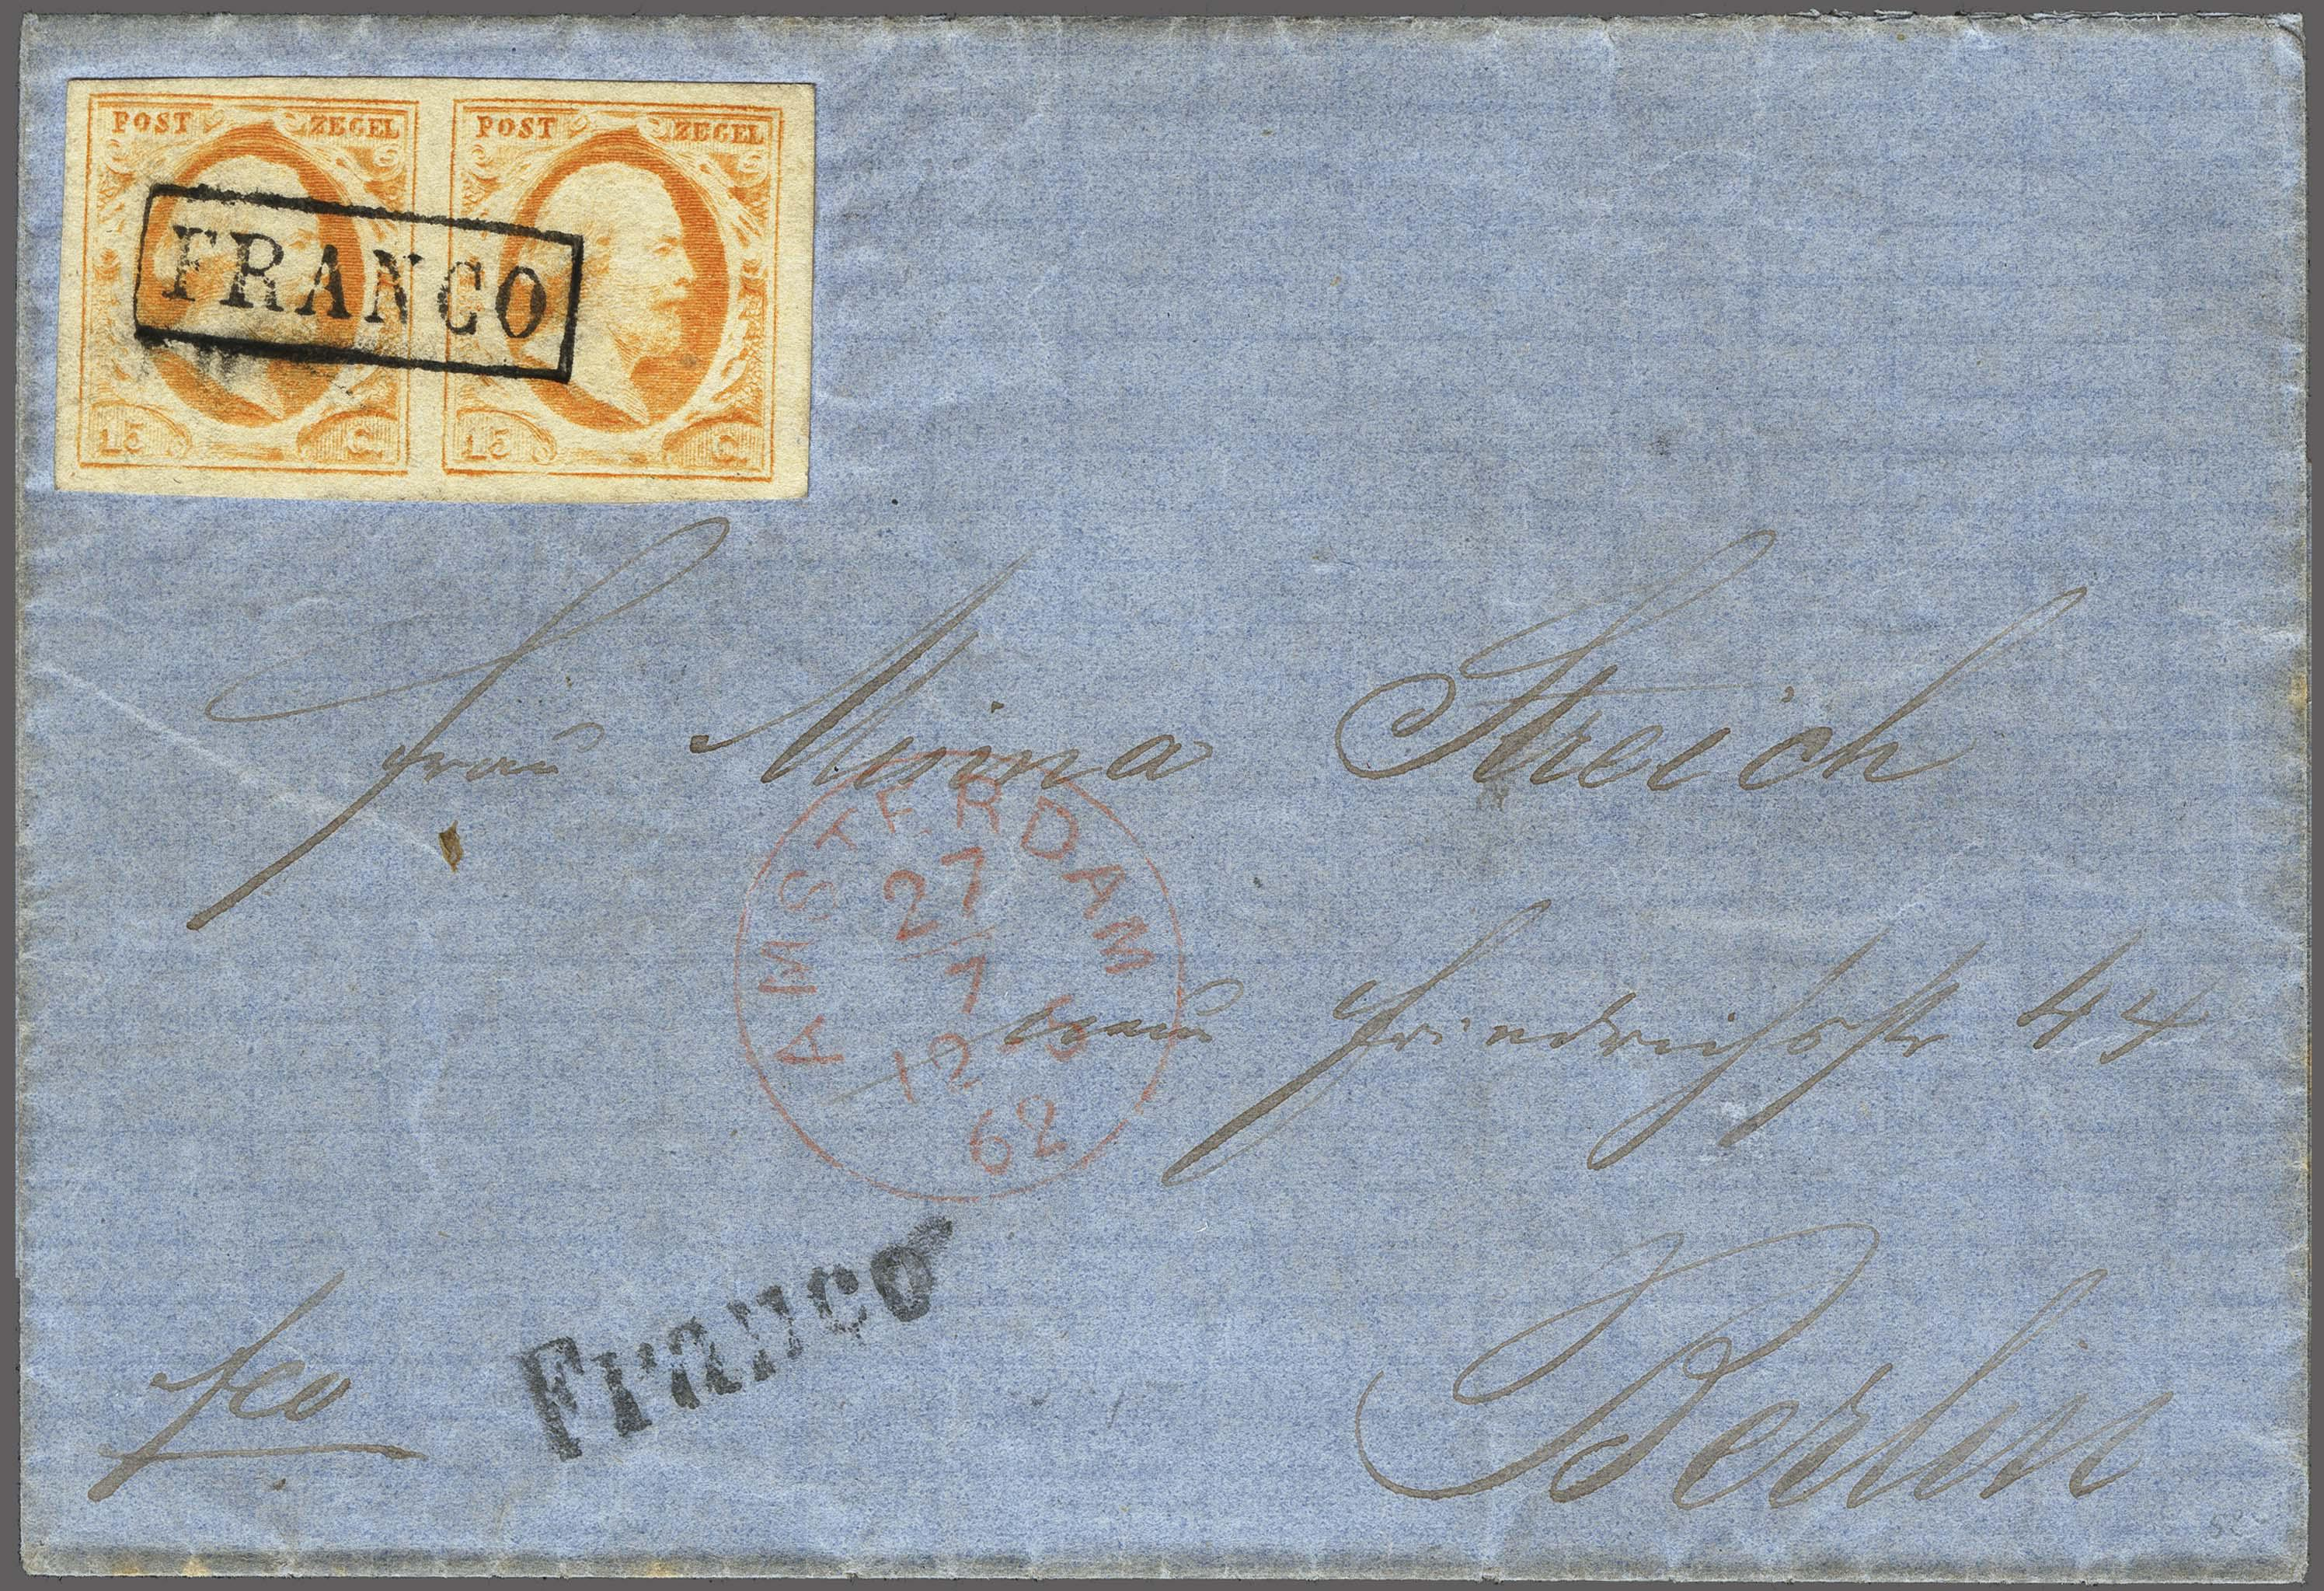 Lot 2478 - Netherlands and former colonies NL 1852 King William III -  Corinphila Veilingen Auction 250-253 - Day 3 - Netherlands and former colonies - Single lots & Picture postcards